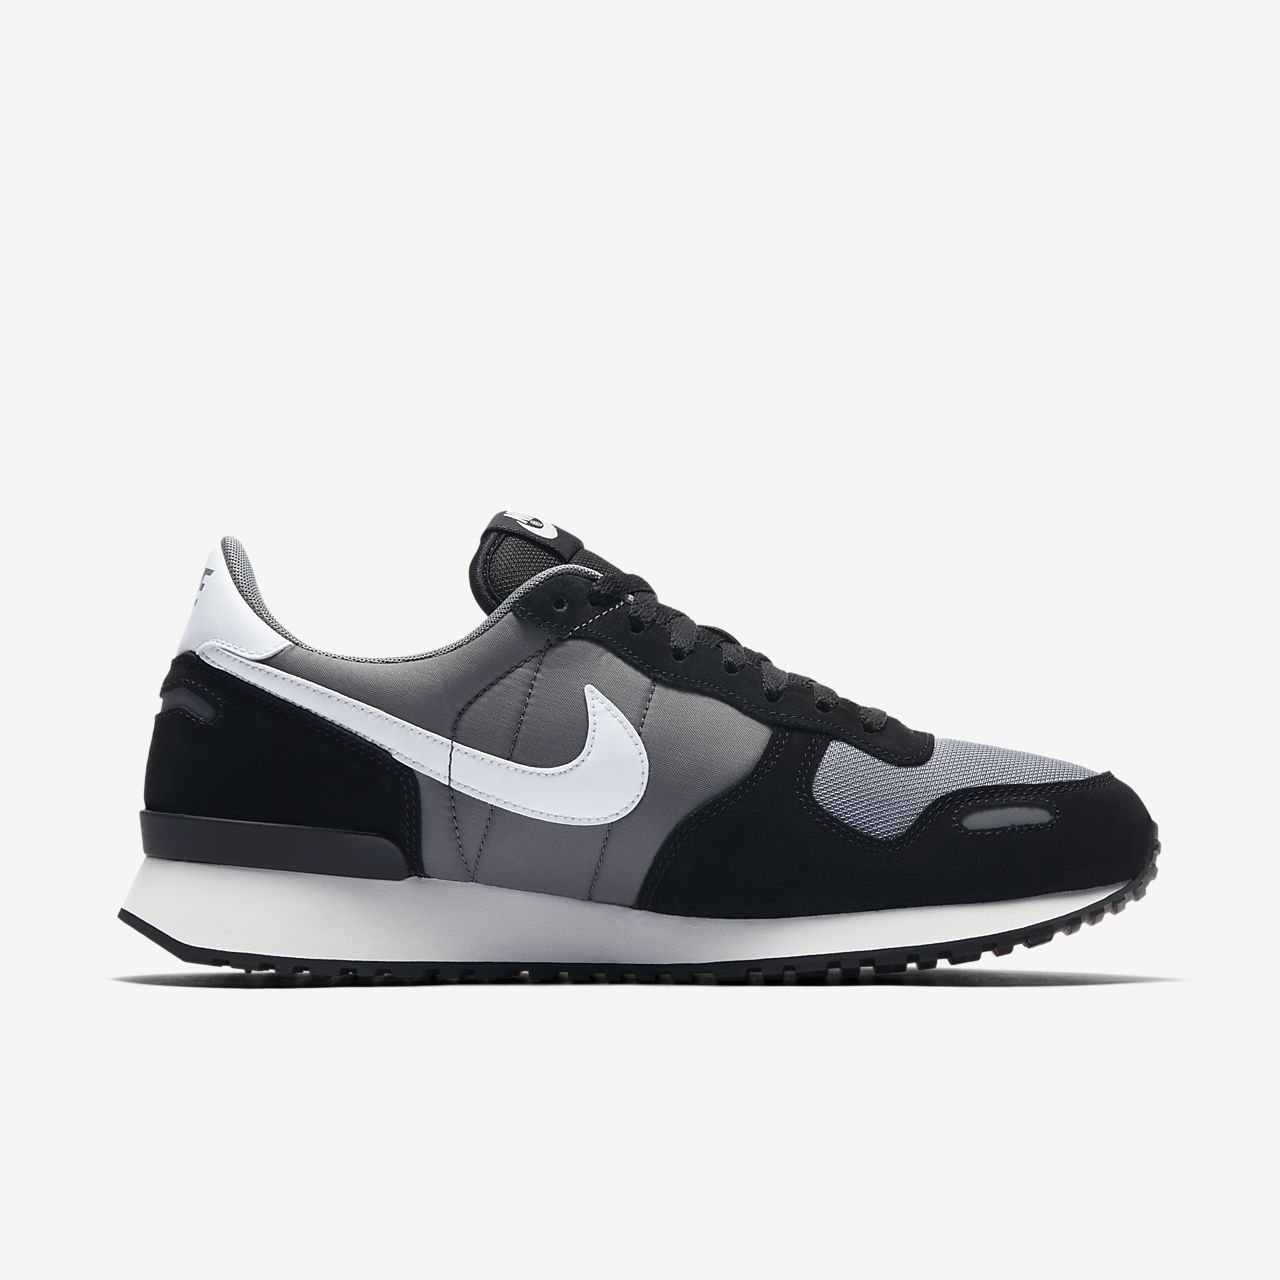 Basket mode - Sneakers NIKE Air VORTEX Noir Gris 903896-001 BVRDYaqWW